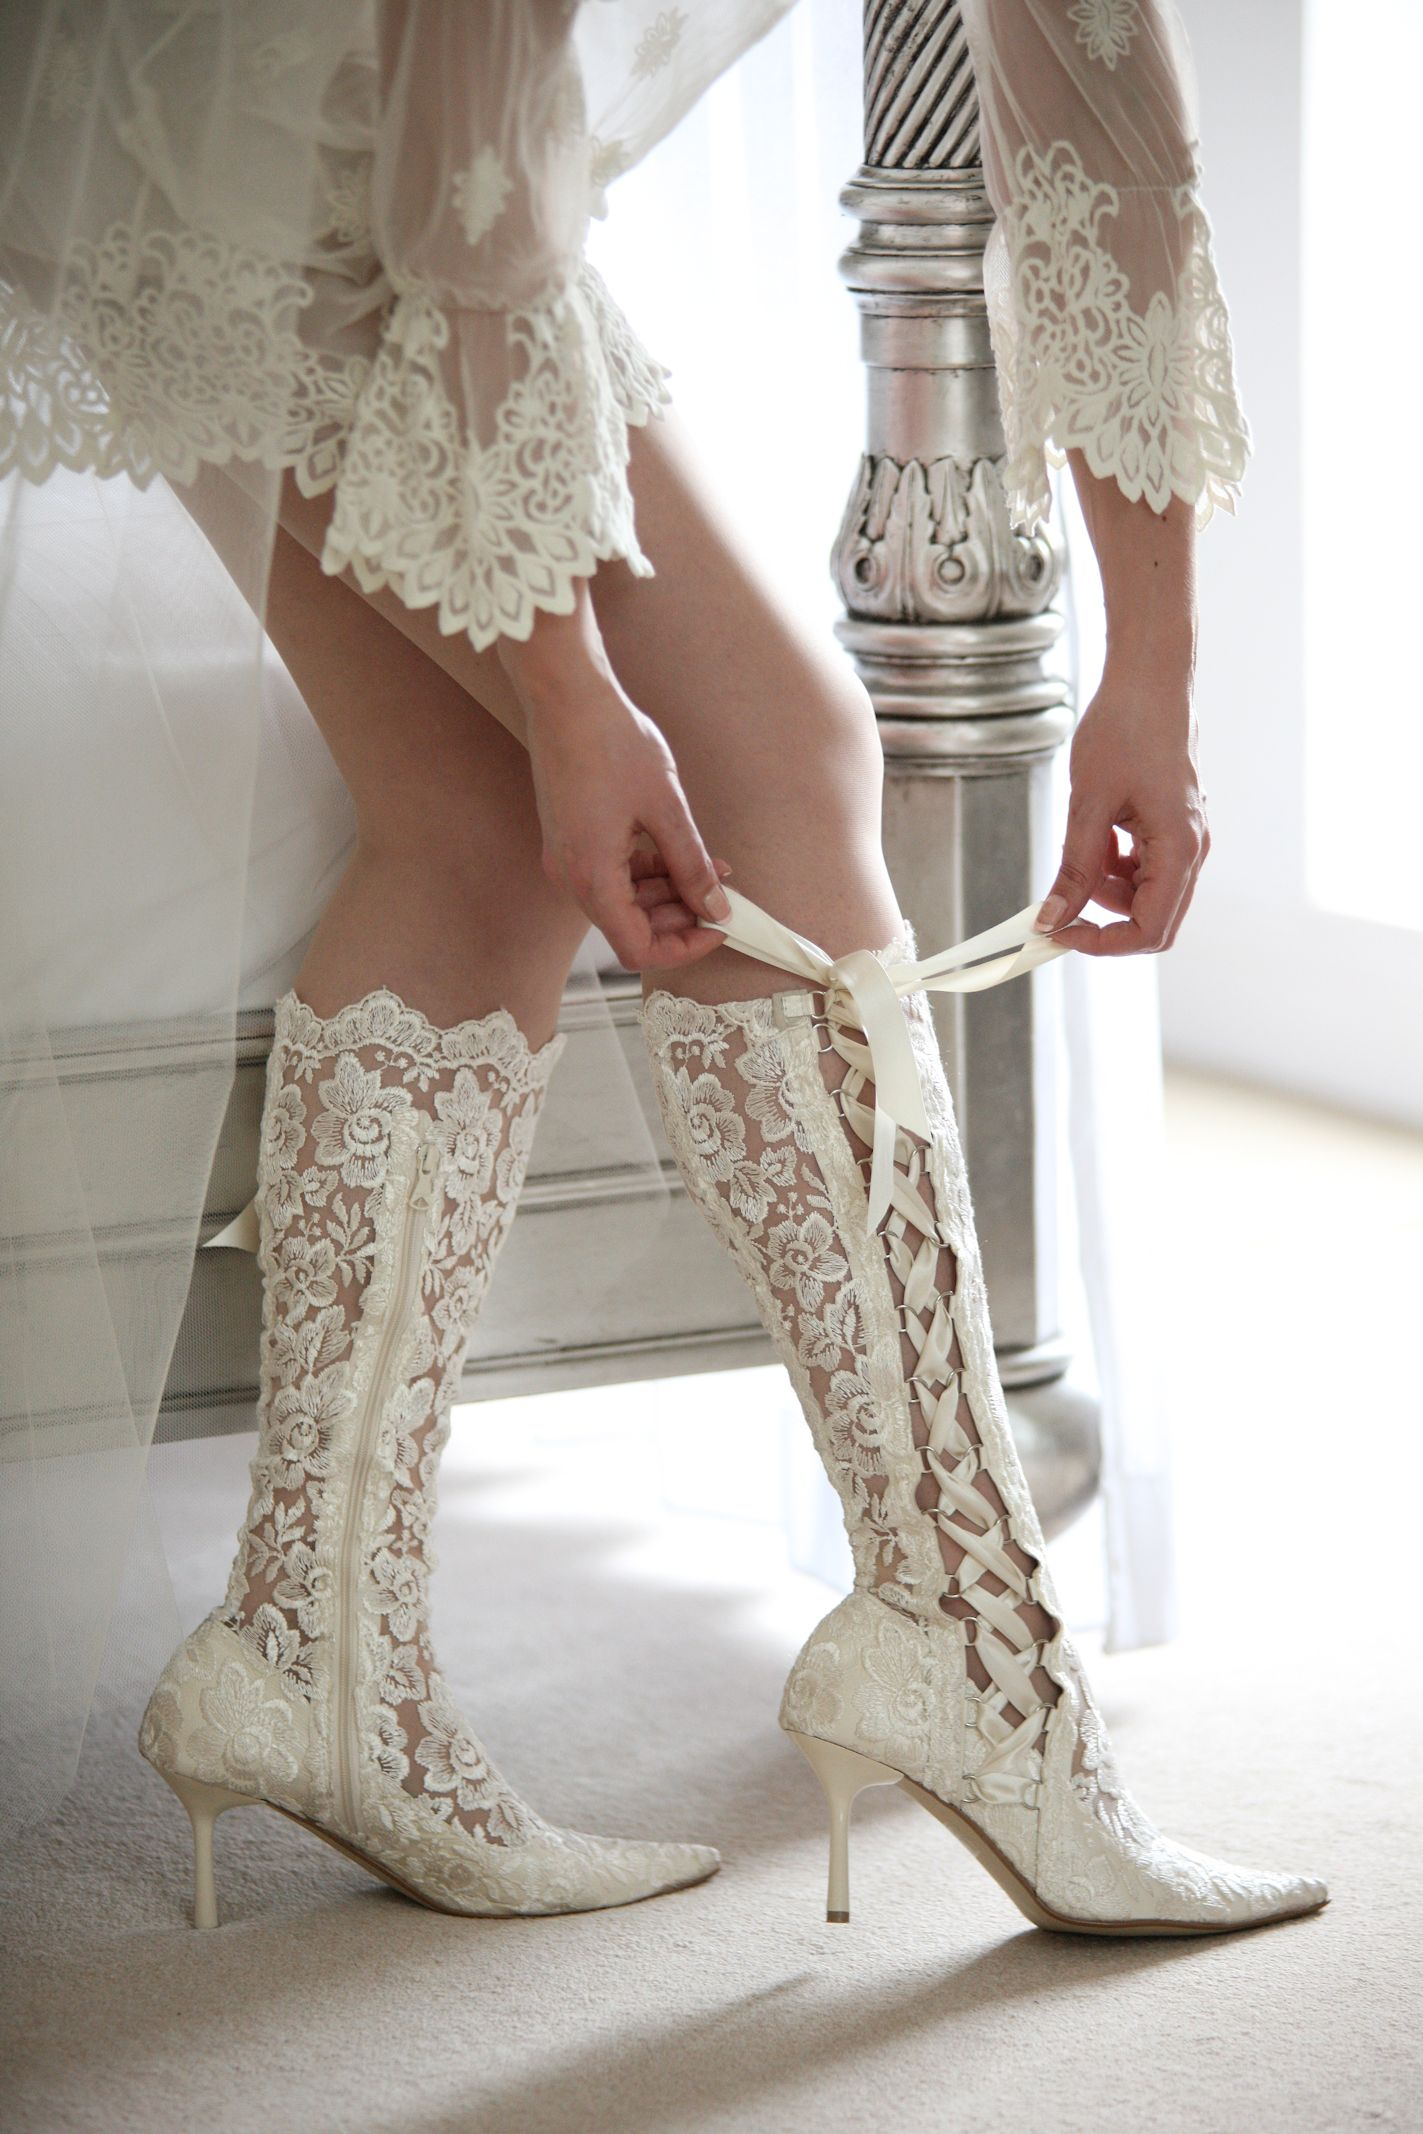 House Of Elliot Lace Bridal Bootshand Made Boots From The U K Available Exclusively In S Advantagebridal